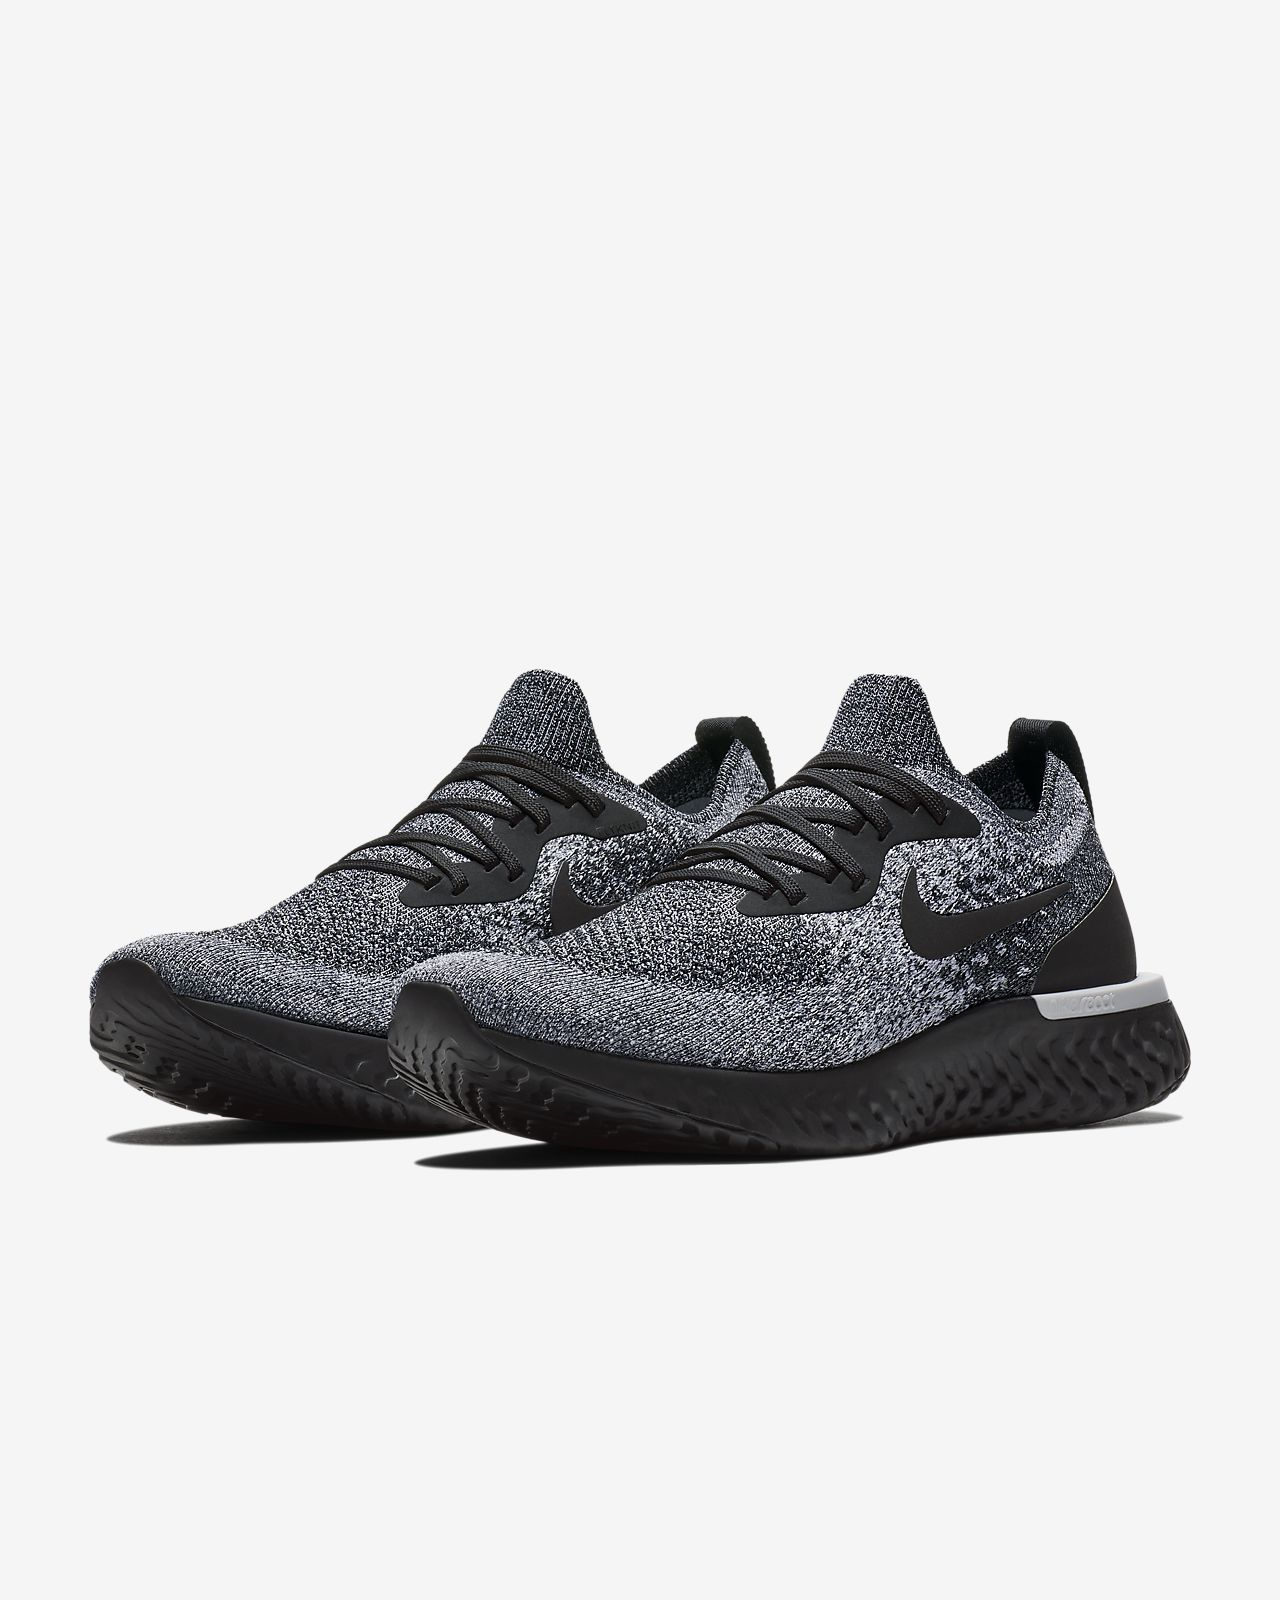 70acbe8183a Nike Epic React Flyknit Men s Running Shoe. Nike.com ID